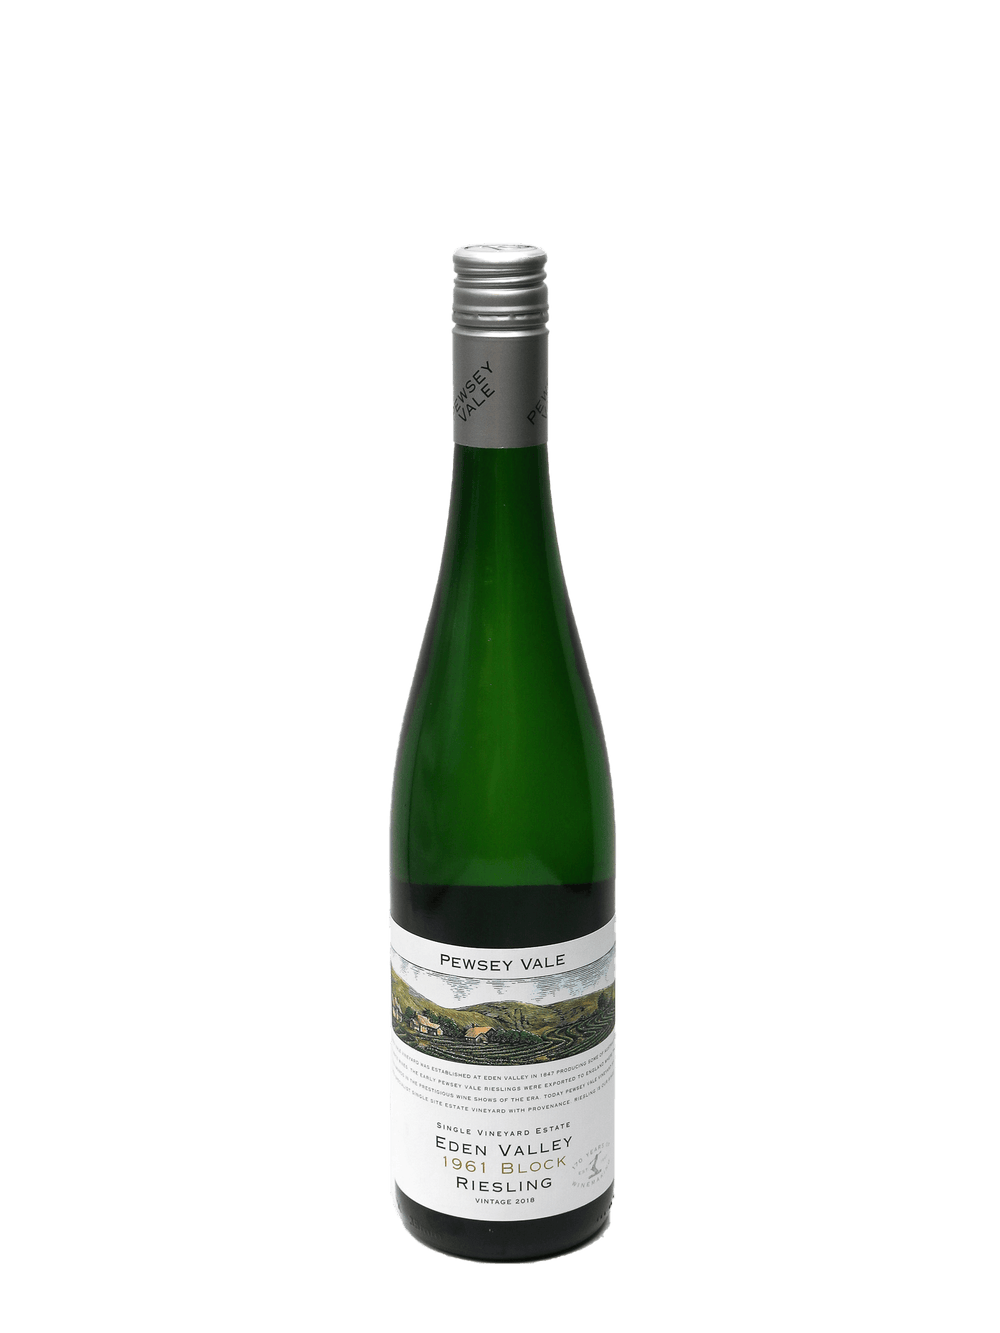 2018 Pewsey Vale Riesling Block 1961